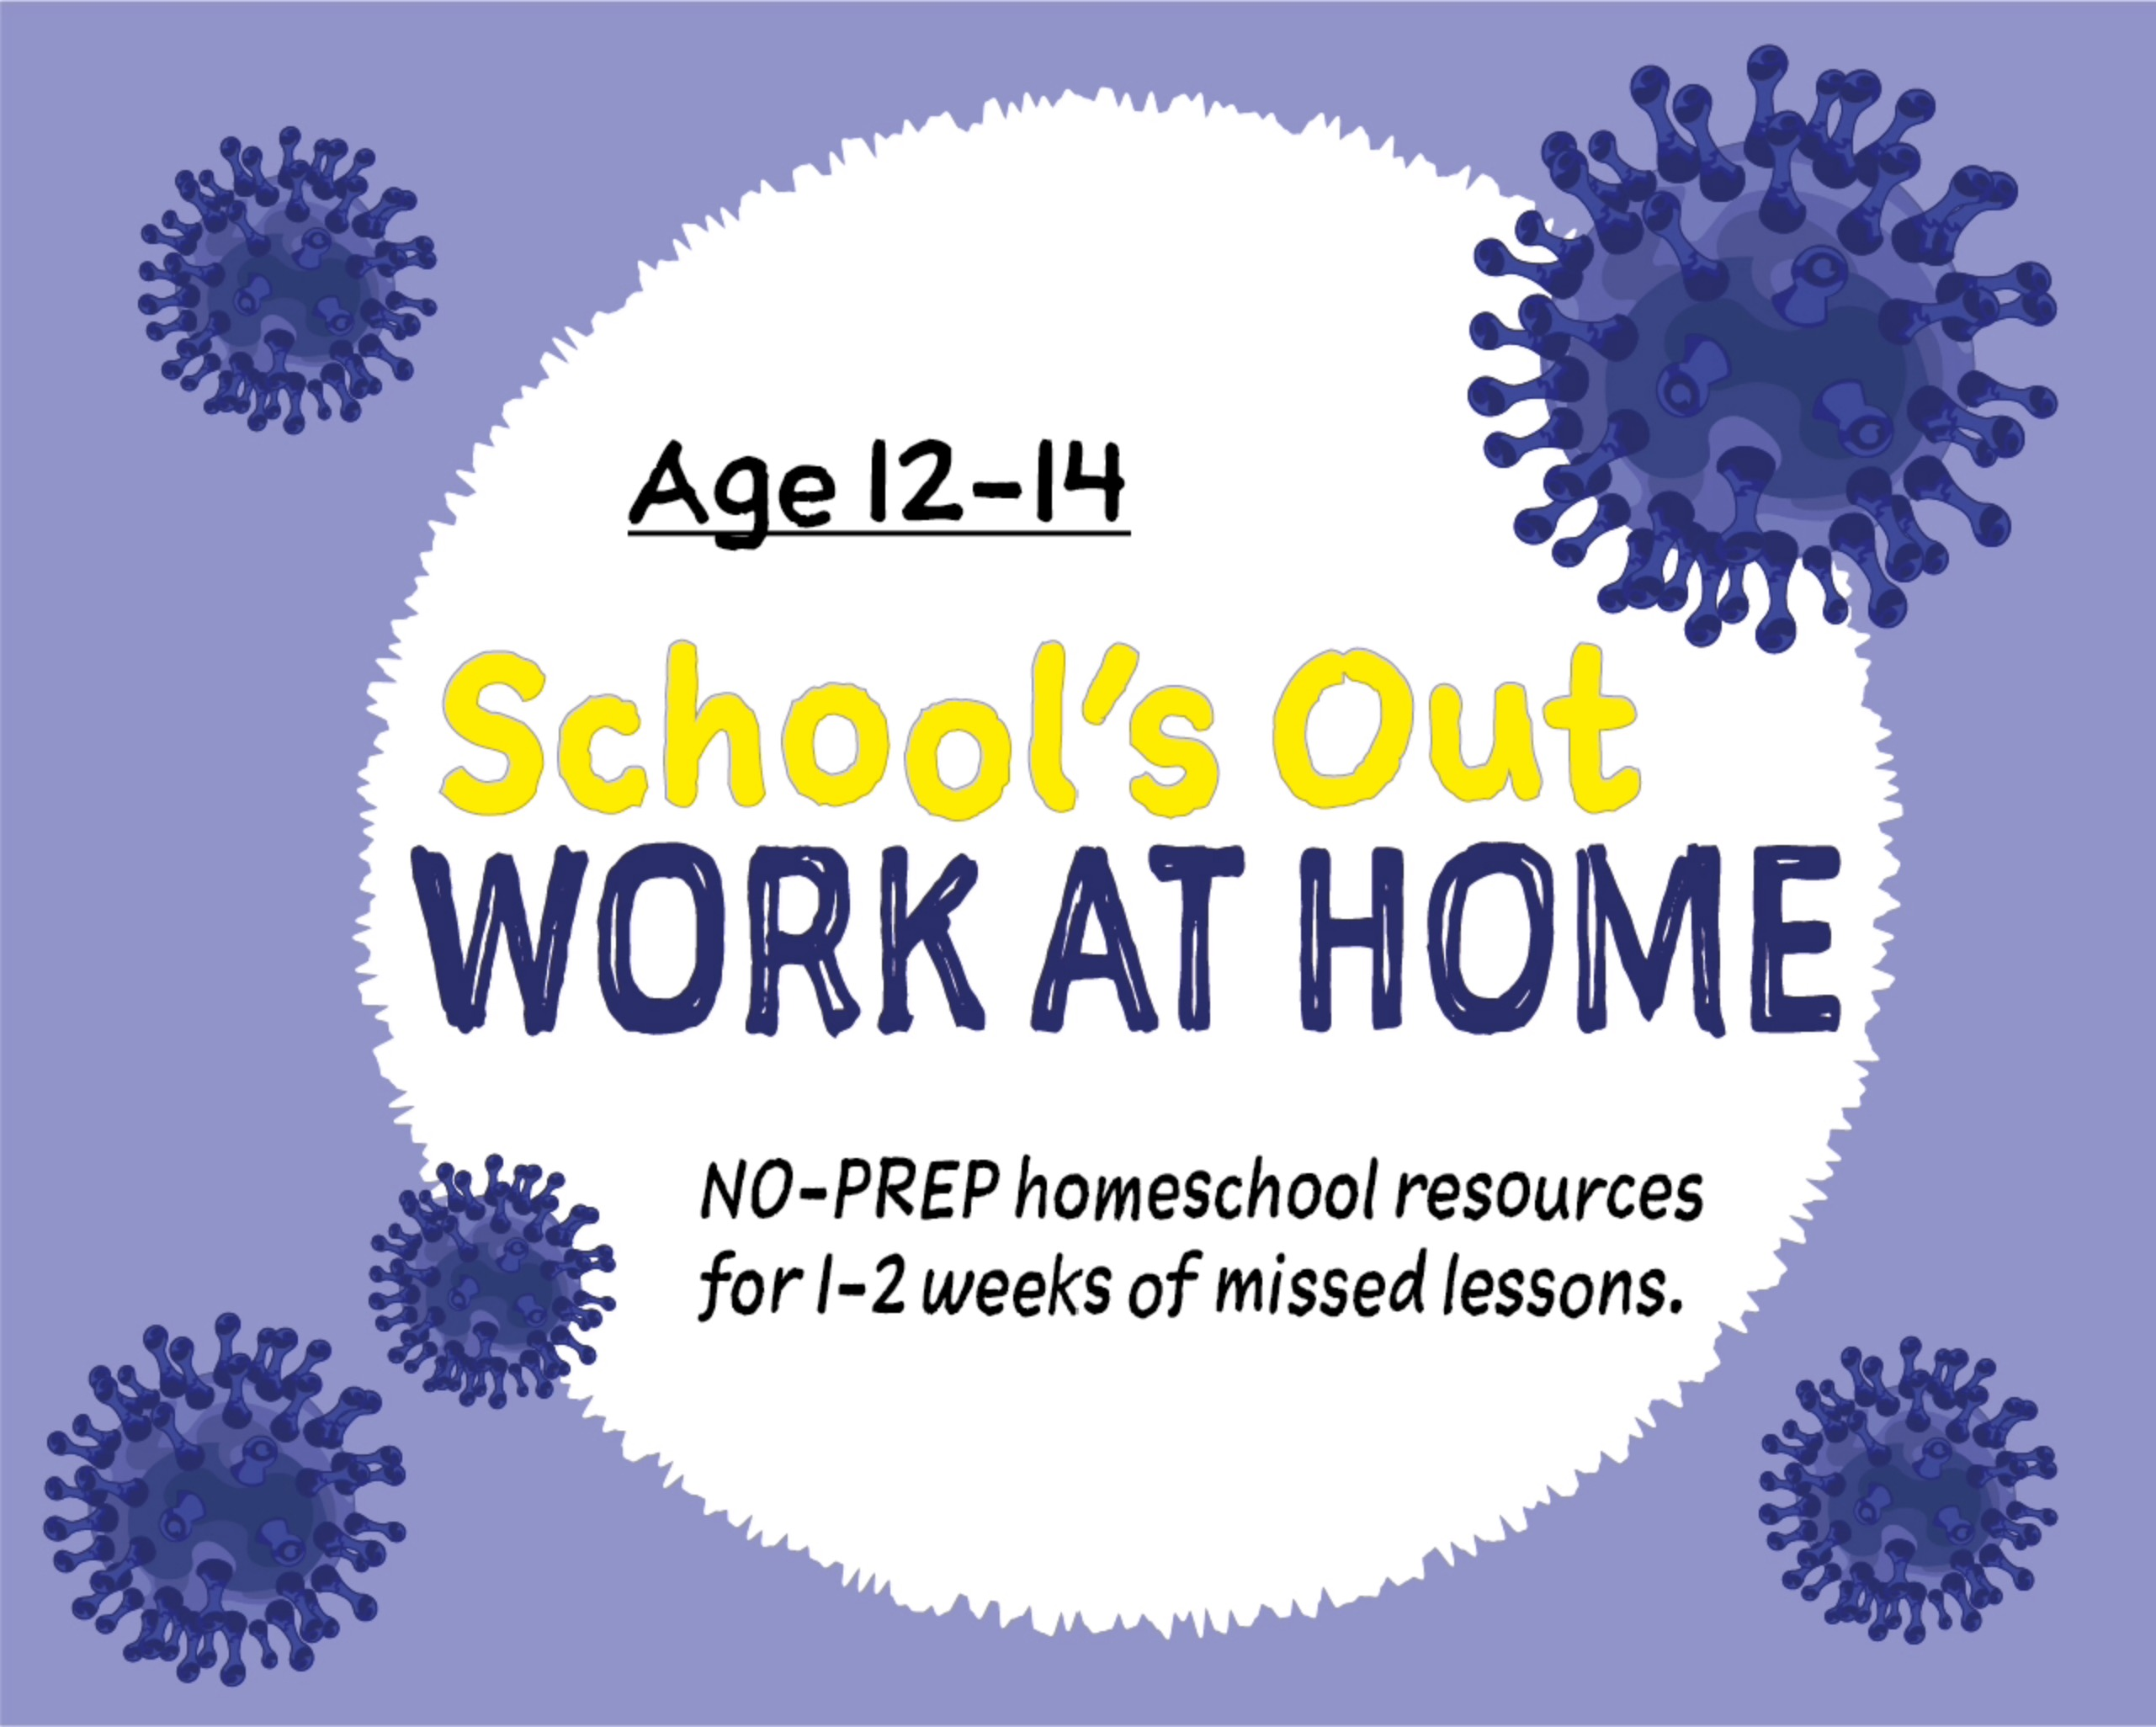 Schools Out For Coronavirus! Prepare For Schooling At Home (age 12-14 years) (years 8-9) (grade 7-8)